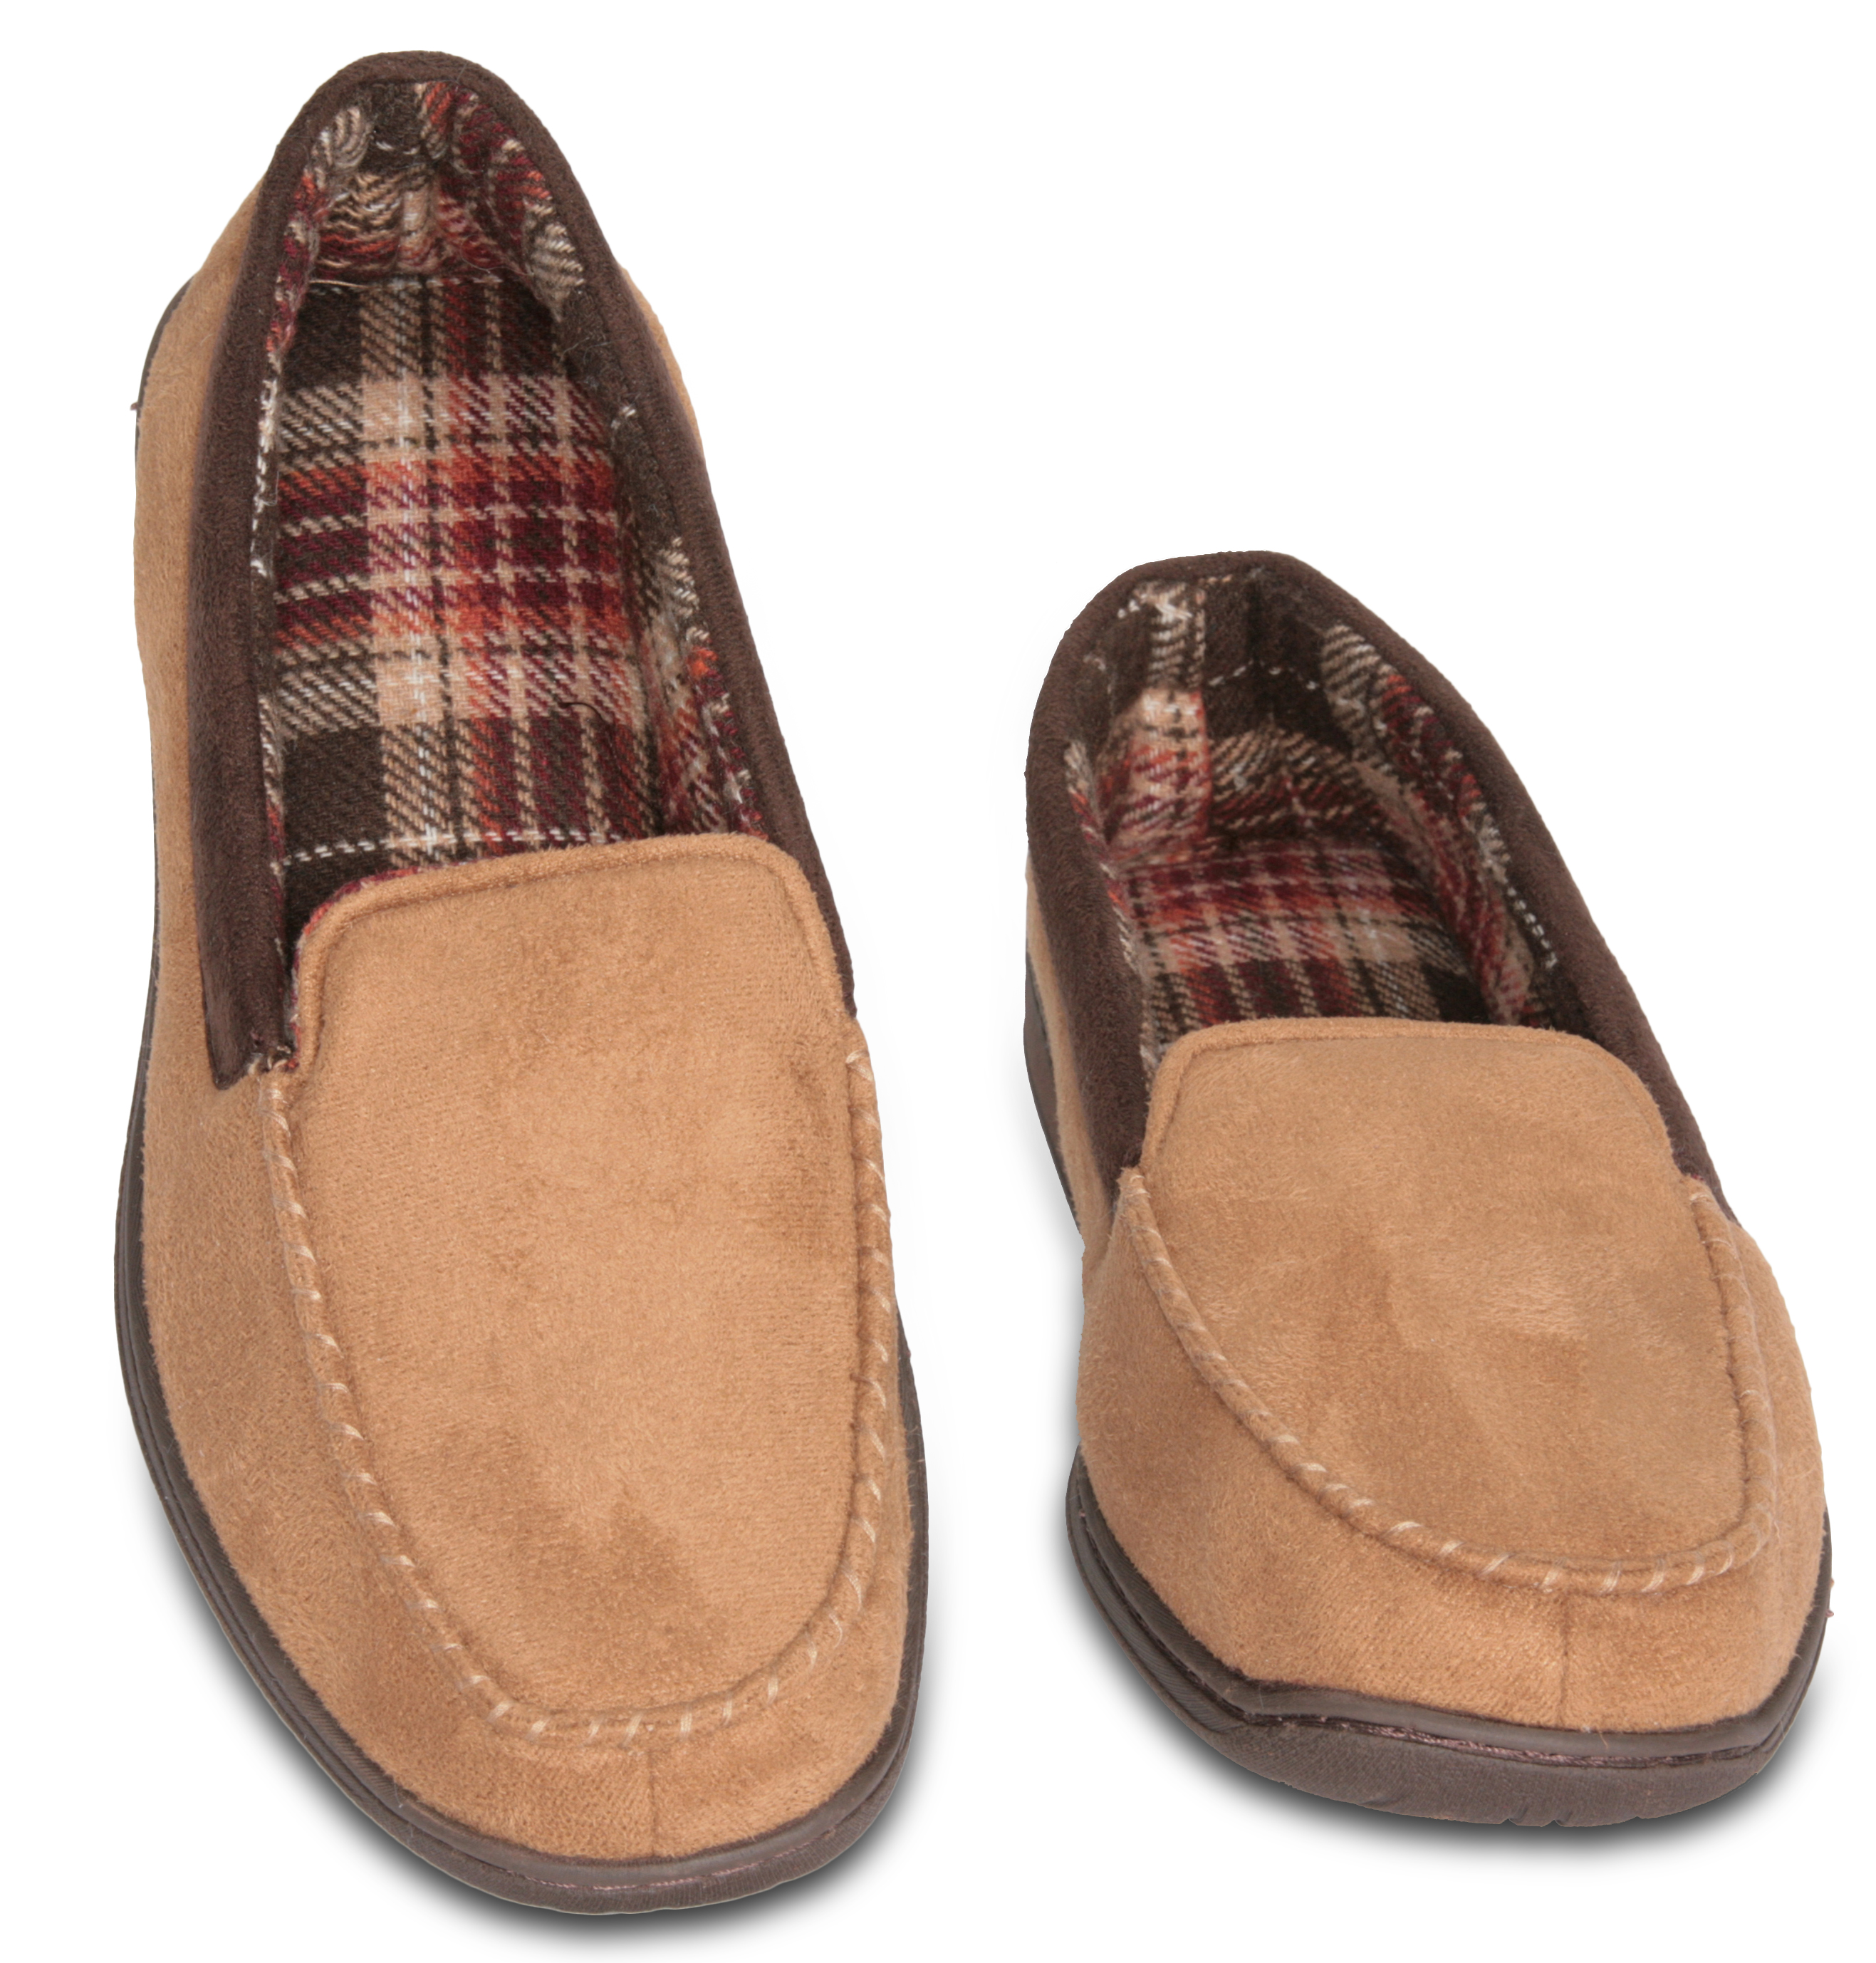 Mens Memory Foam Slippers   Mens Suede House Slipper Terry Lining Camel  11 12